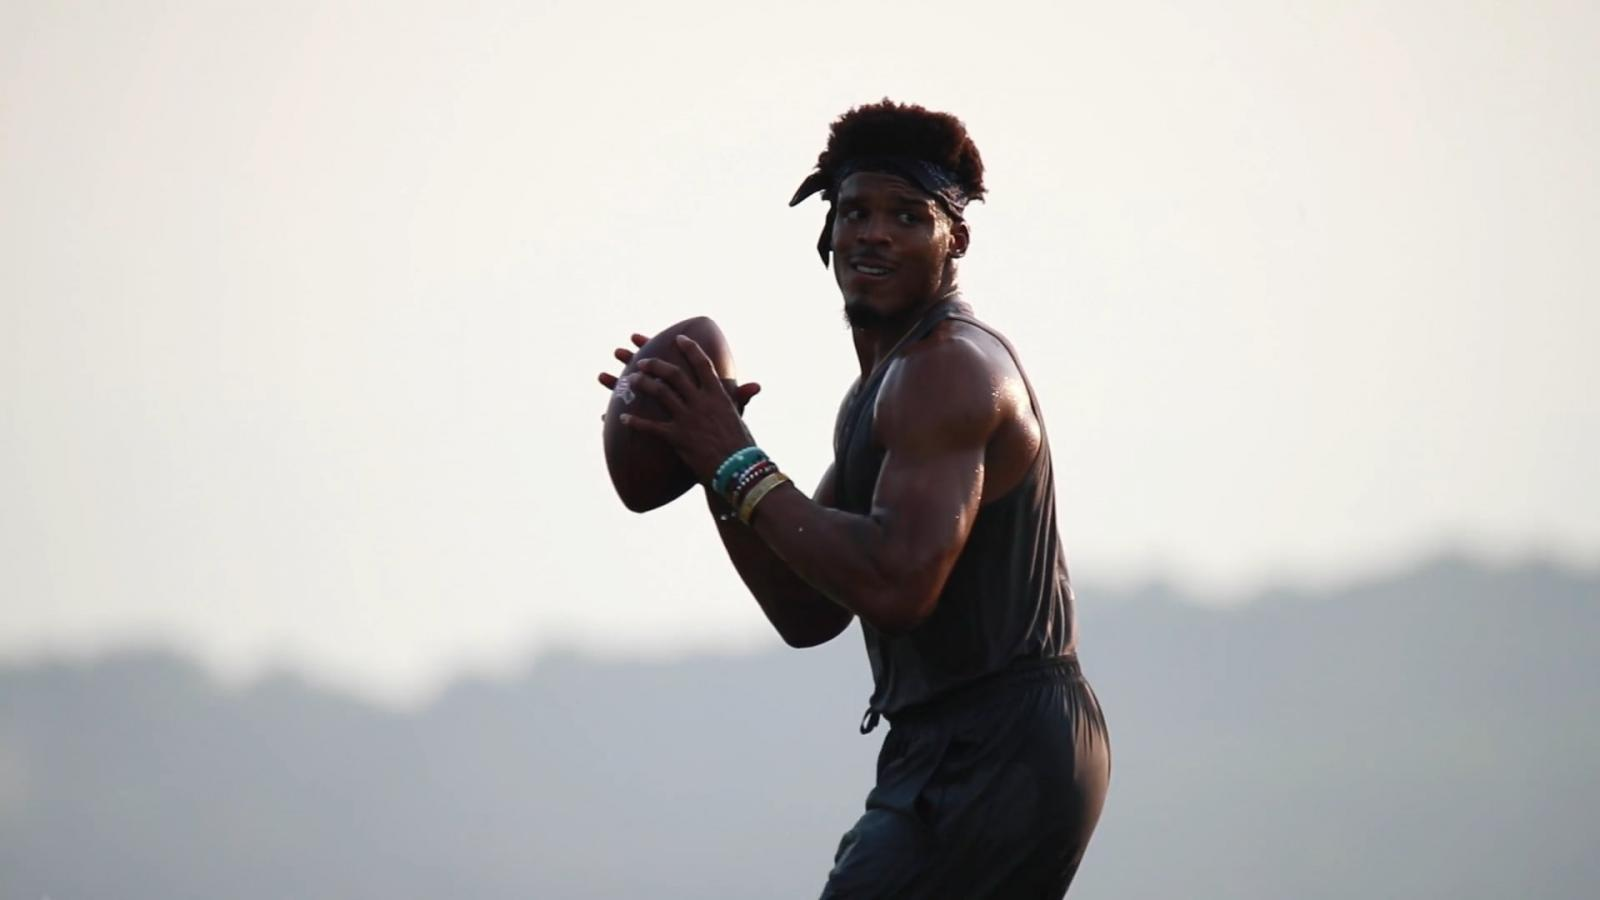 Under Armour shares a look behind Cam Newton's offseason regimen designed by trainer Nate Costa